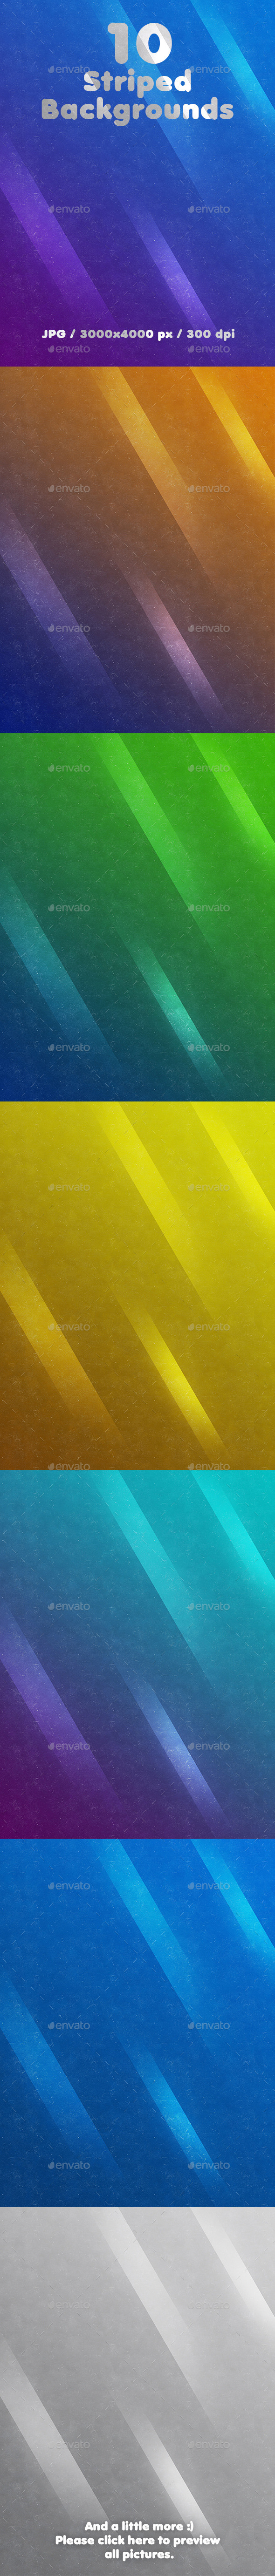 10 Striped Backgrounds - Abstract Backgrounds